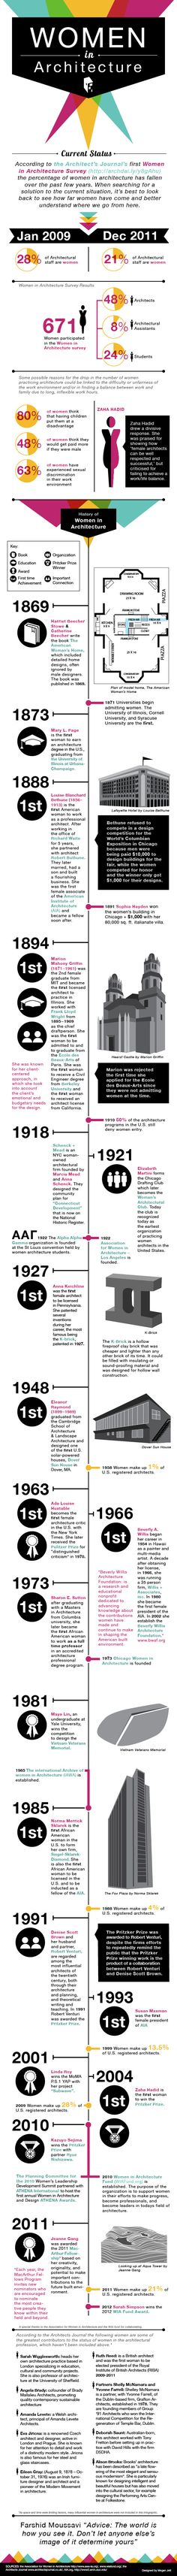 Women in Architecture #infographic ... #Jobs